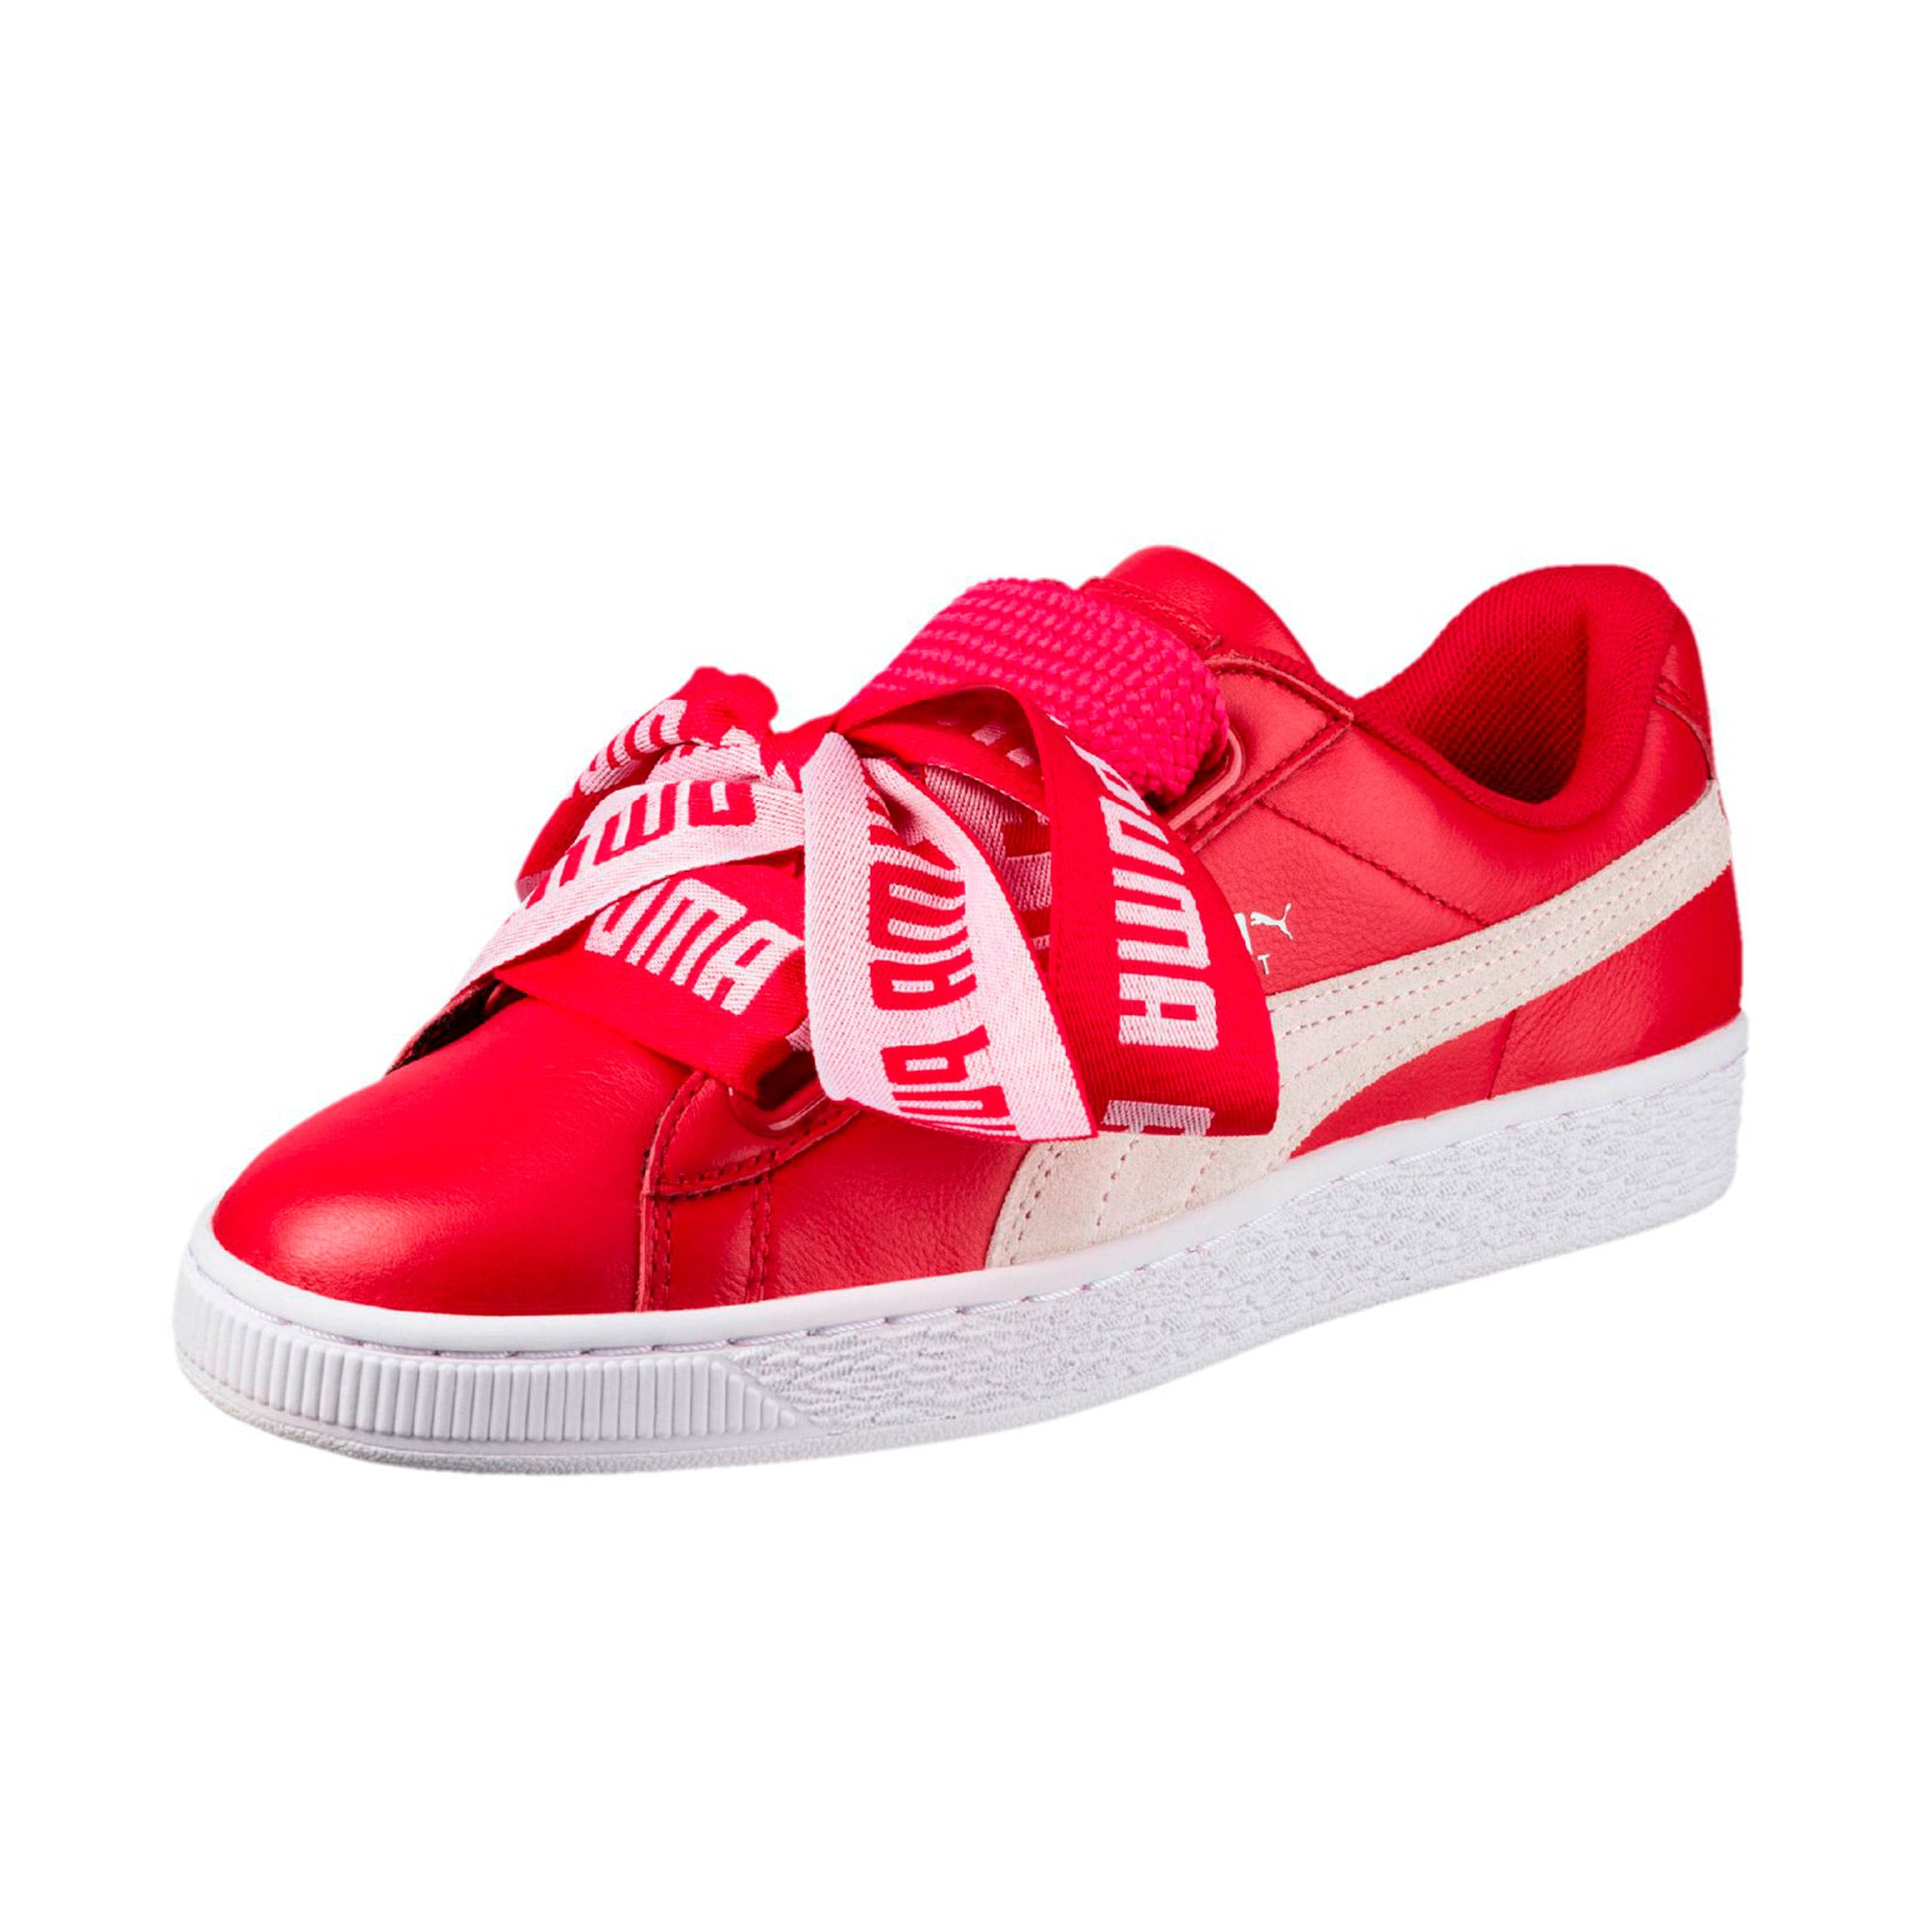 Puma Women's Basket Heart De Sneakers Red Angled View